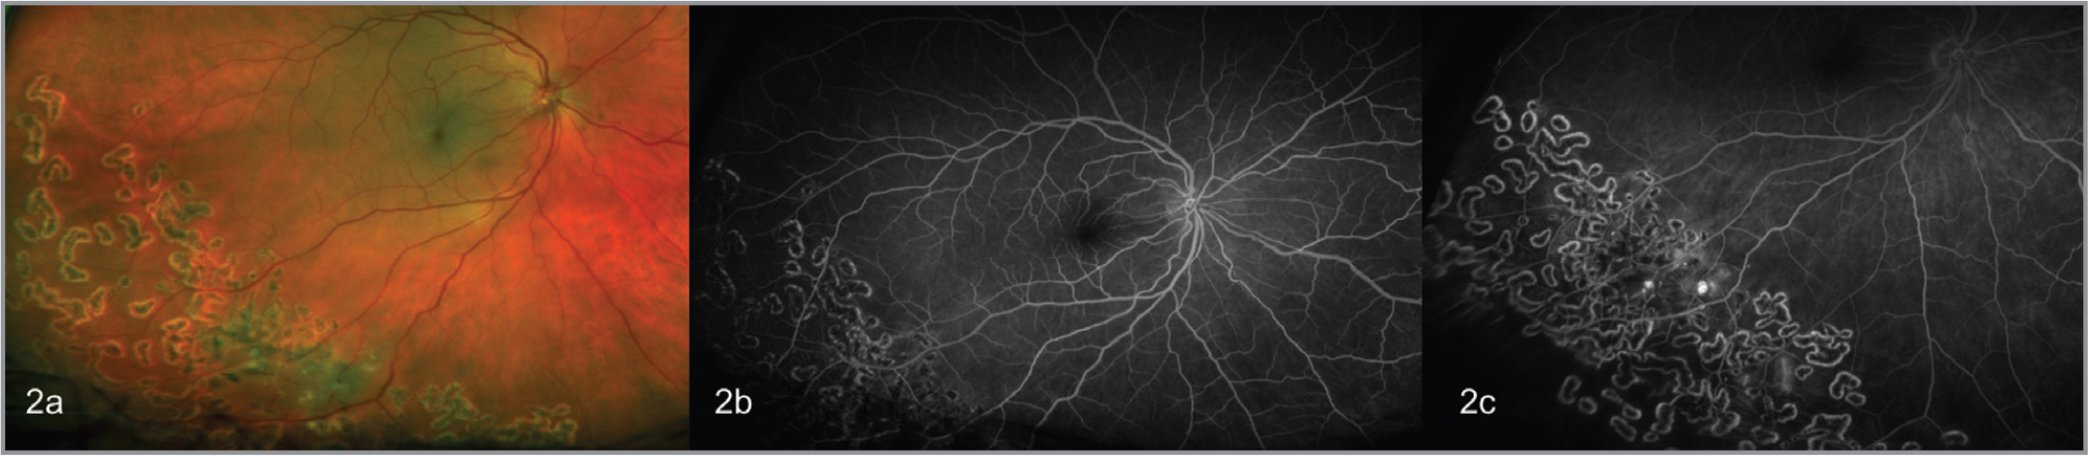 Multimodal ophthalmic imaging upon follow-up showing improved exudation and aneurysmal changes in the bed of ablative laser therapy on fundus photography (a) and fluorescein angiography (b, c).